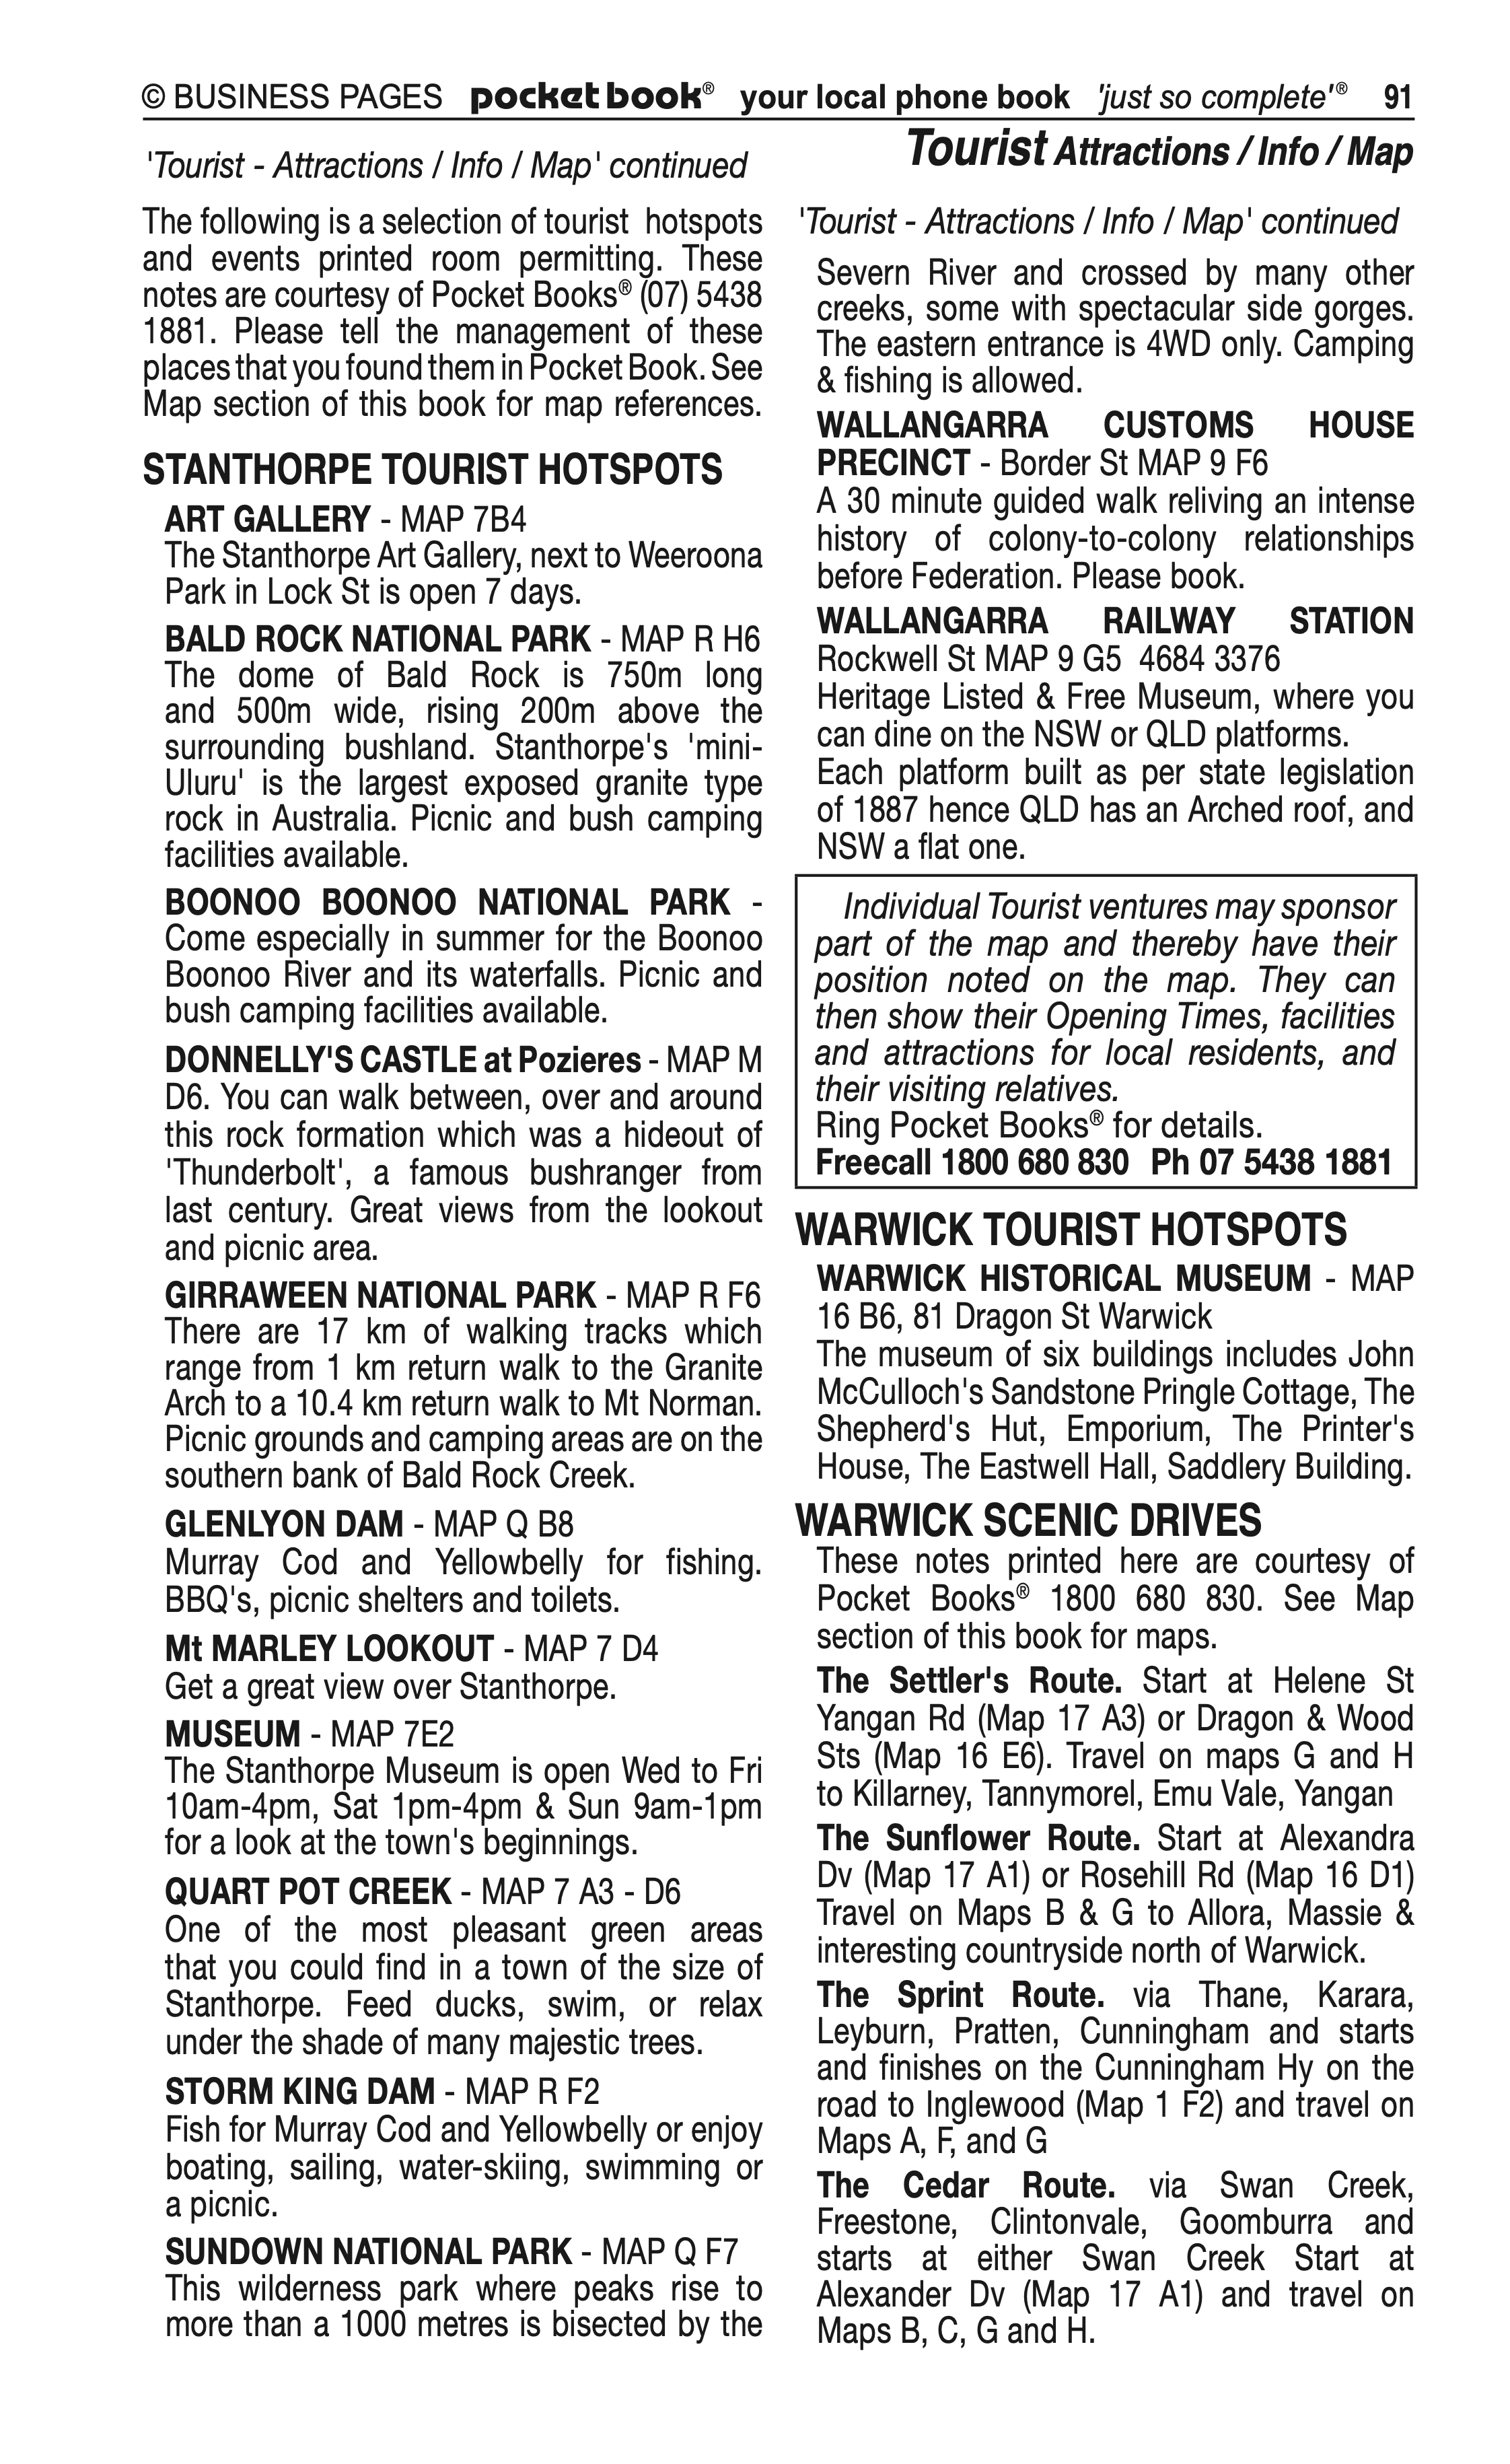 Clarke Anthony Music in Ballan VIC - page 91